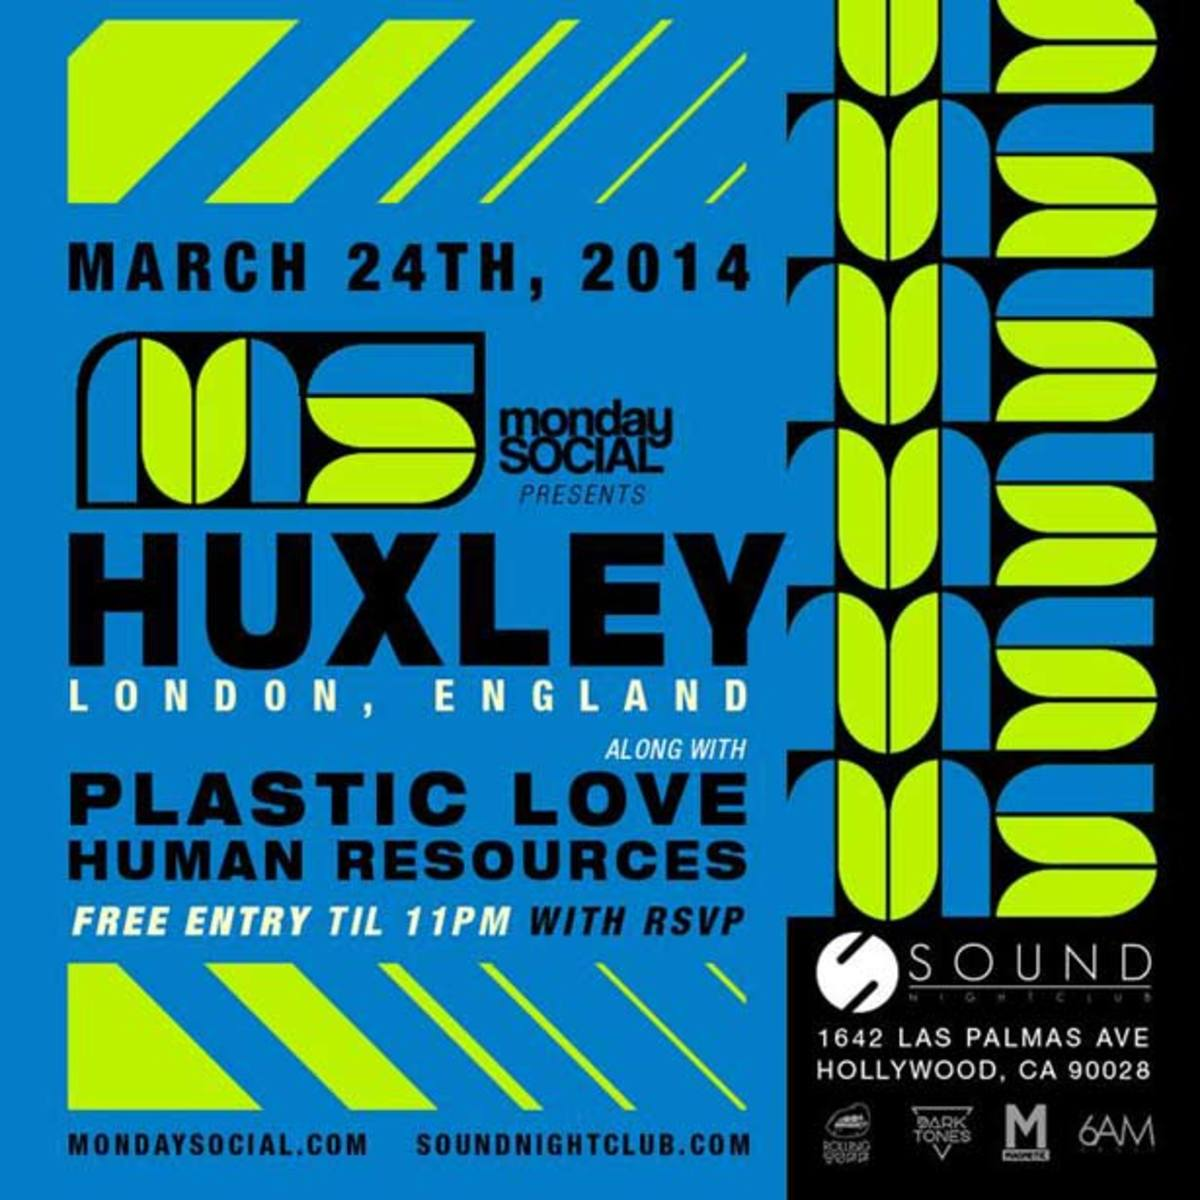 Monday Social Continue Their House Music Tradition Tonight With Huxley